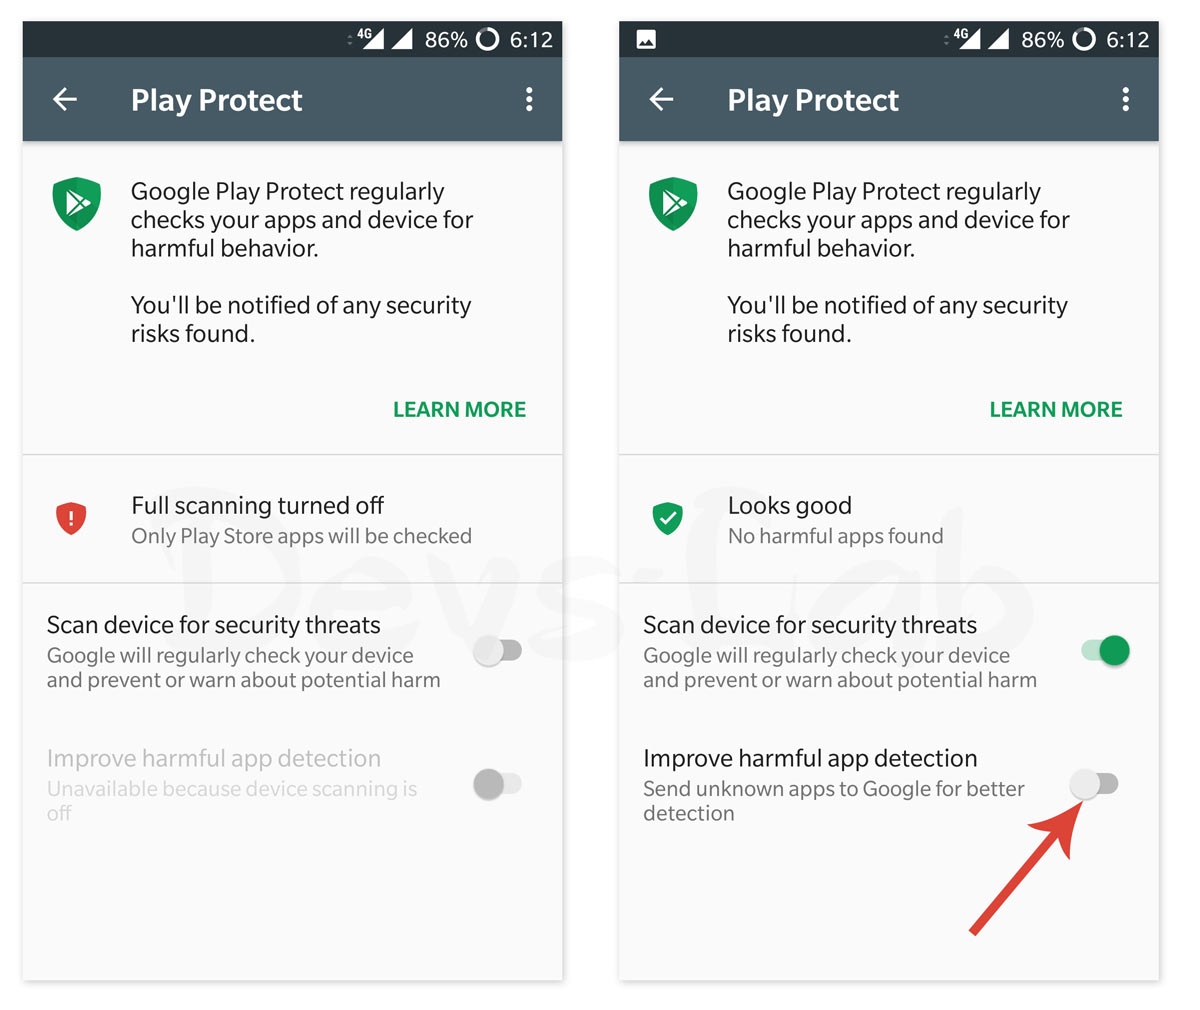 How to Google Play Protect Android device